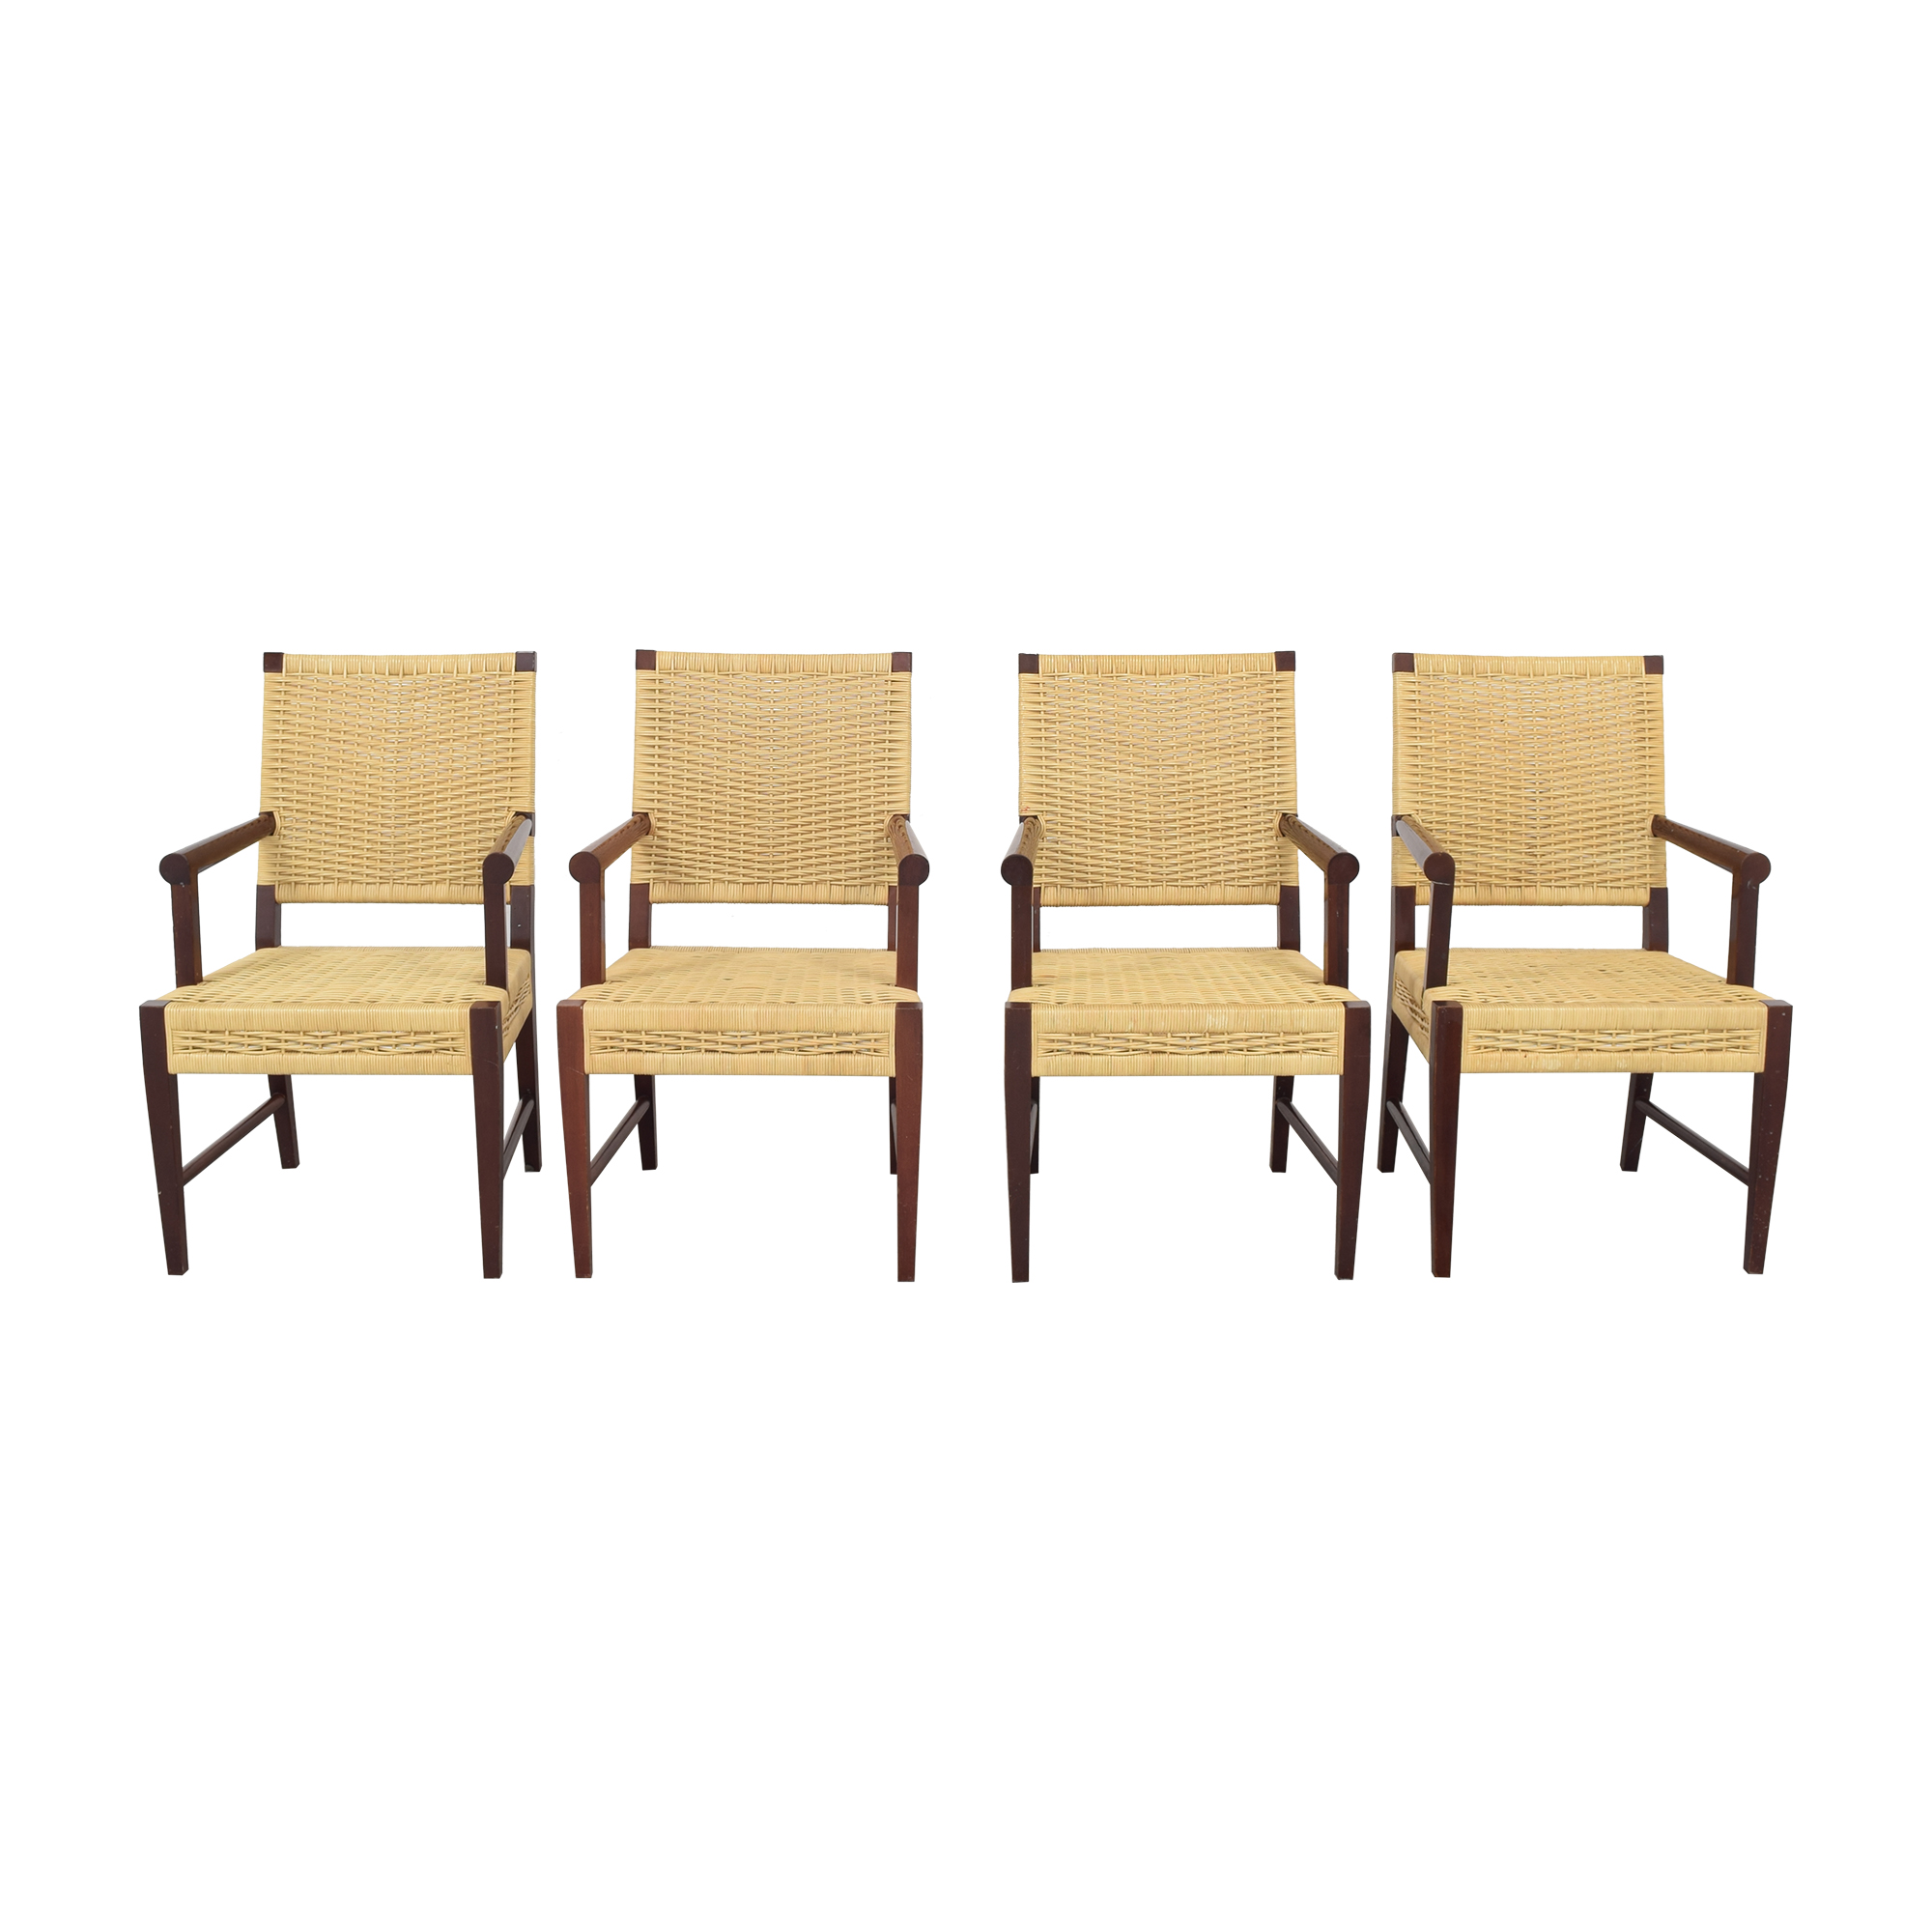 Donghia Donghia Dining Chairs in Merbau Wood with Raffia Weaving price